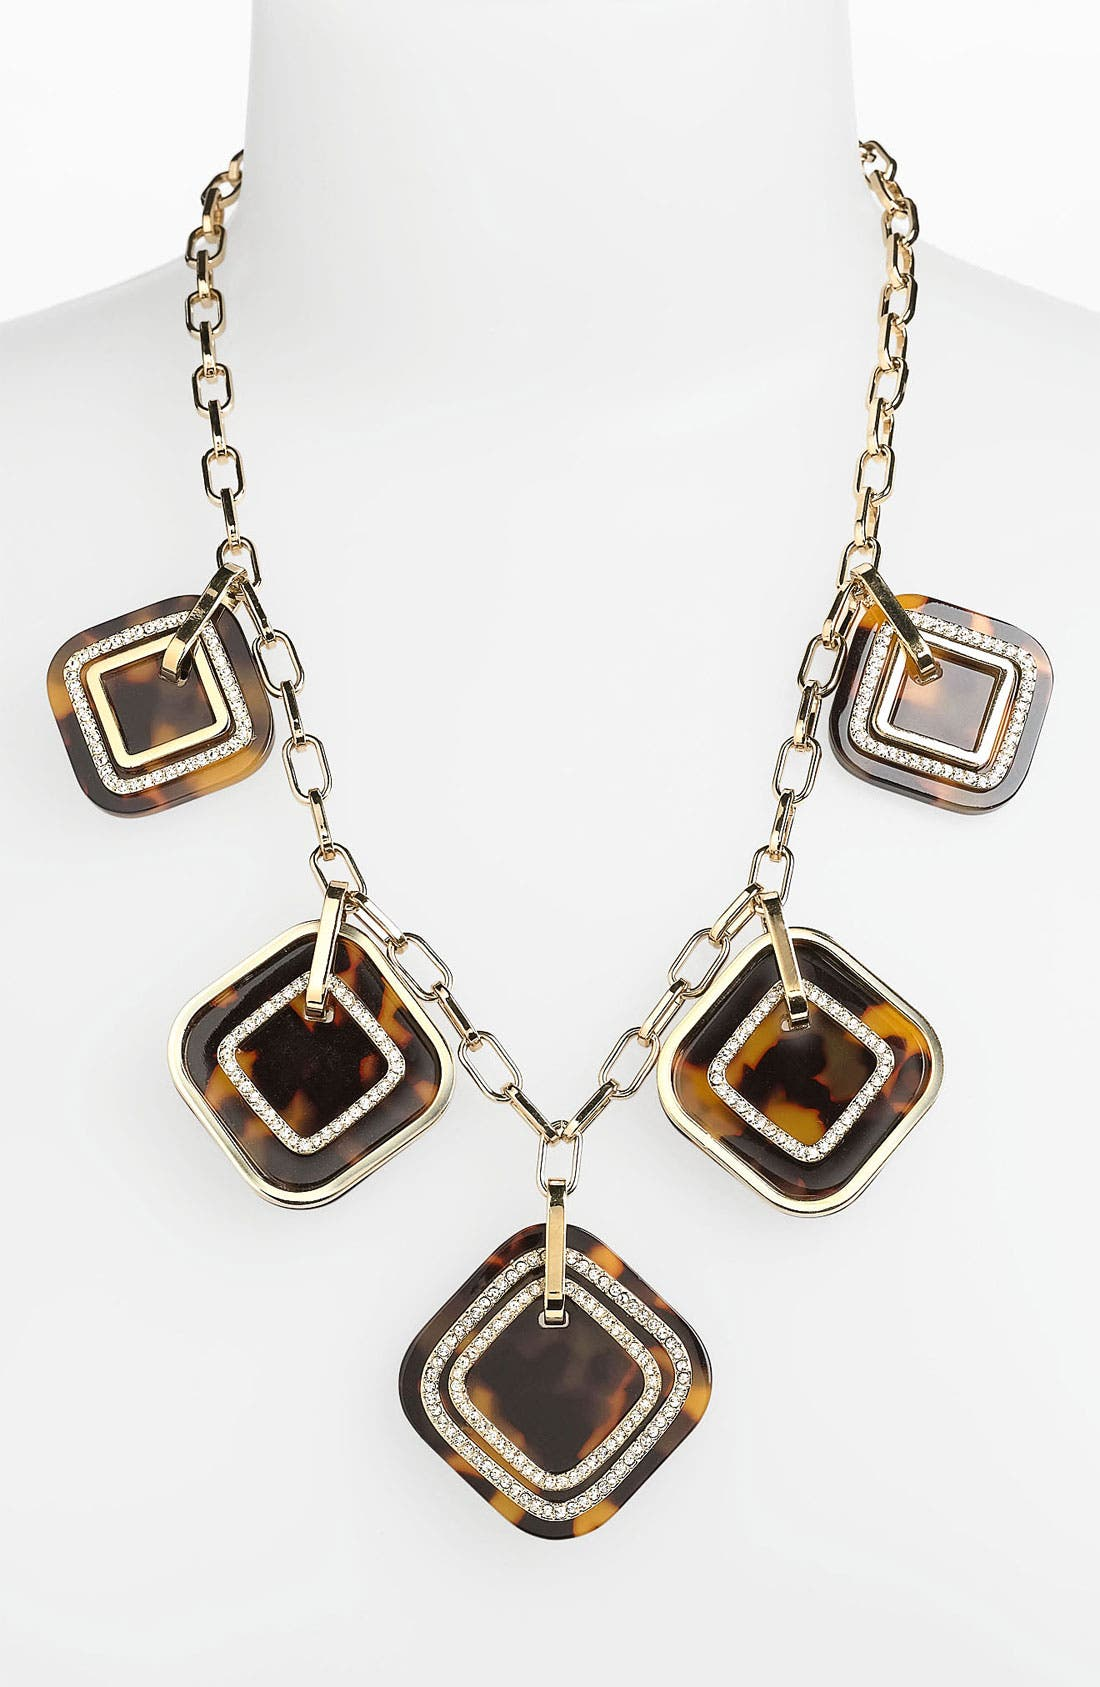 Main Image - Tory Burch 'McCoy' Frontal Necklace